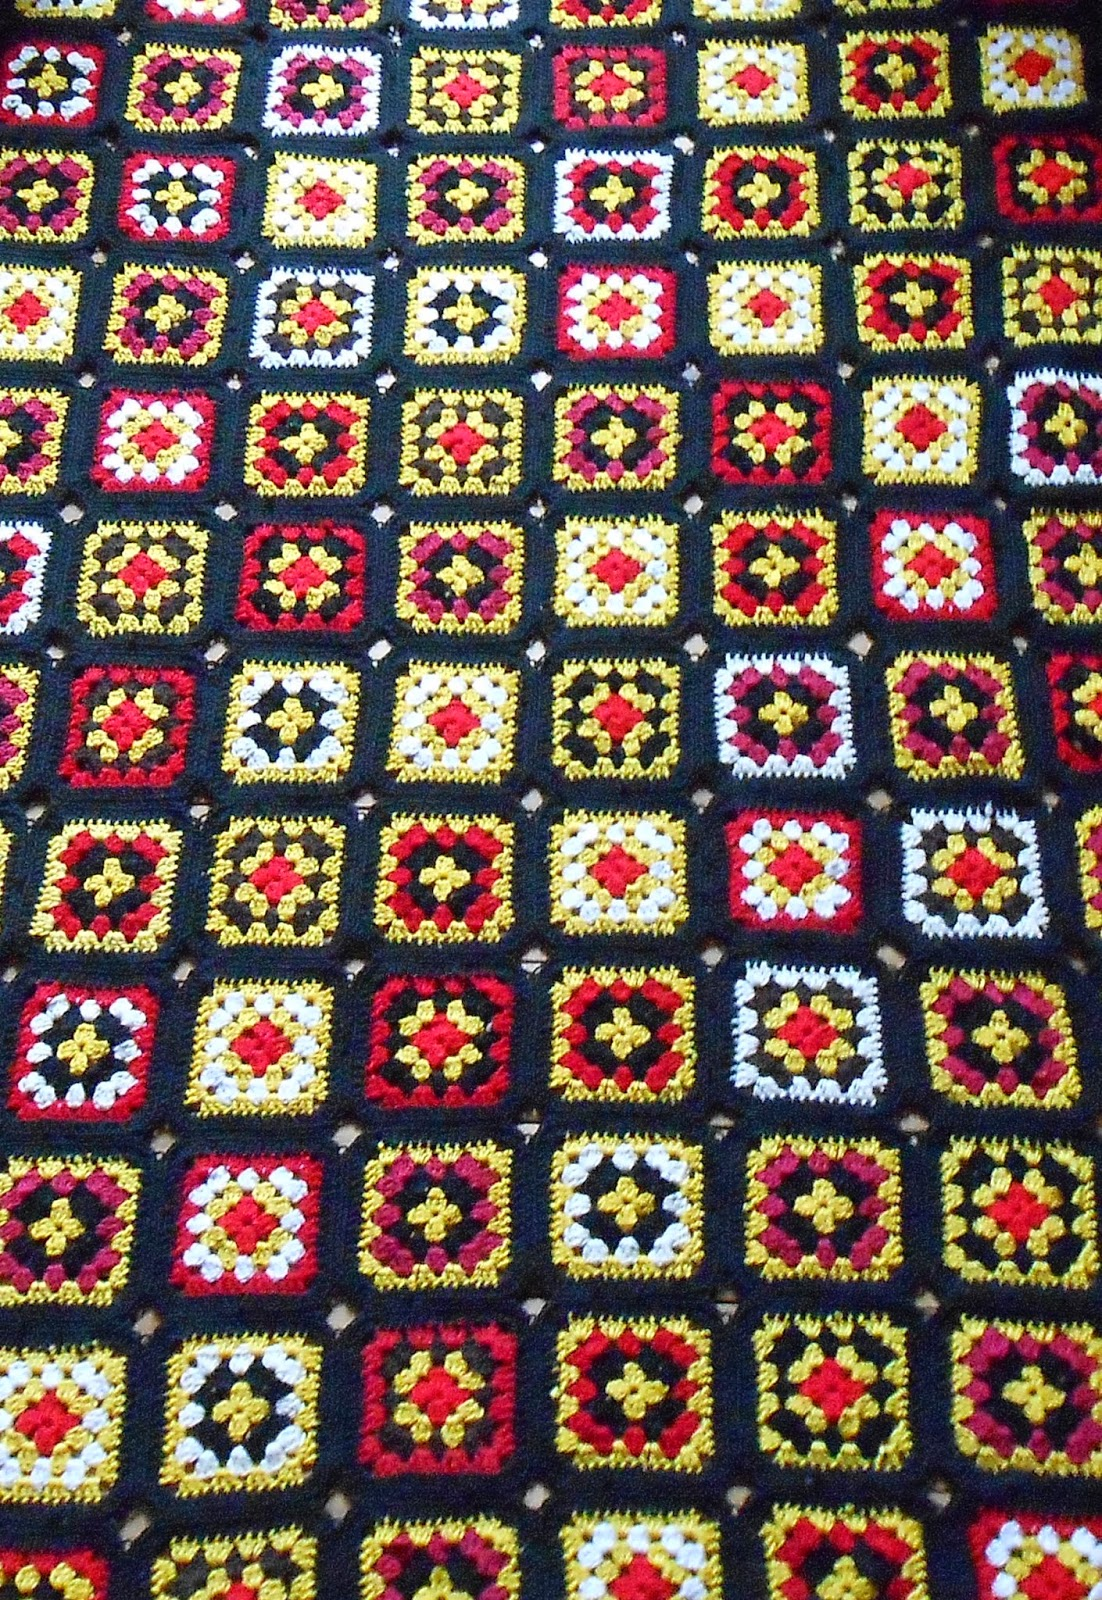 http://www.ravelry.com/projects/Aggai/granny-blanket-no-2